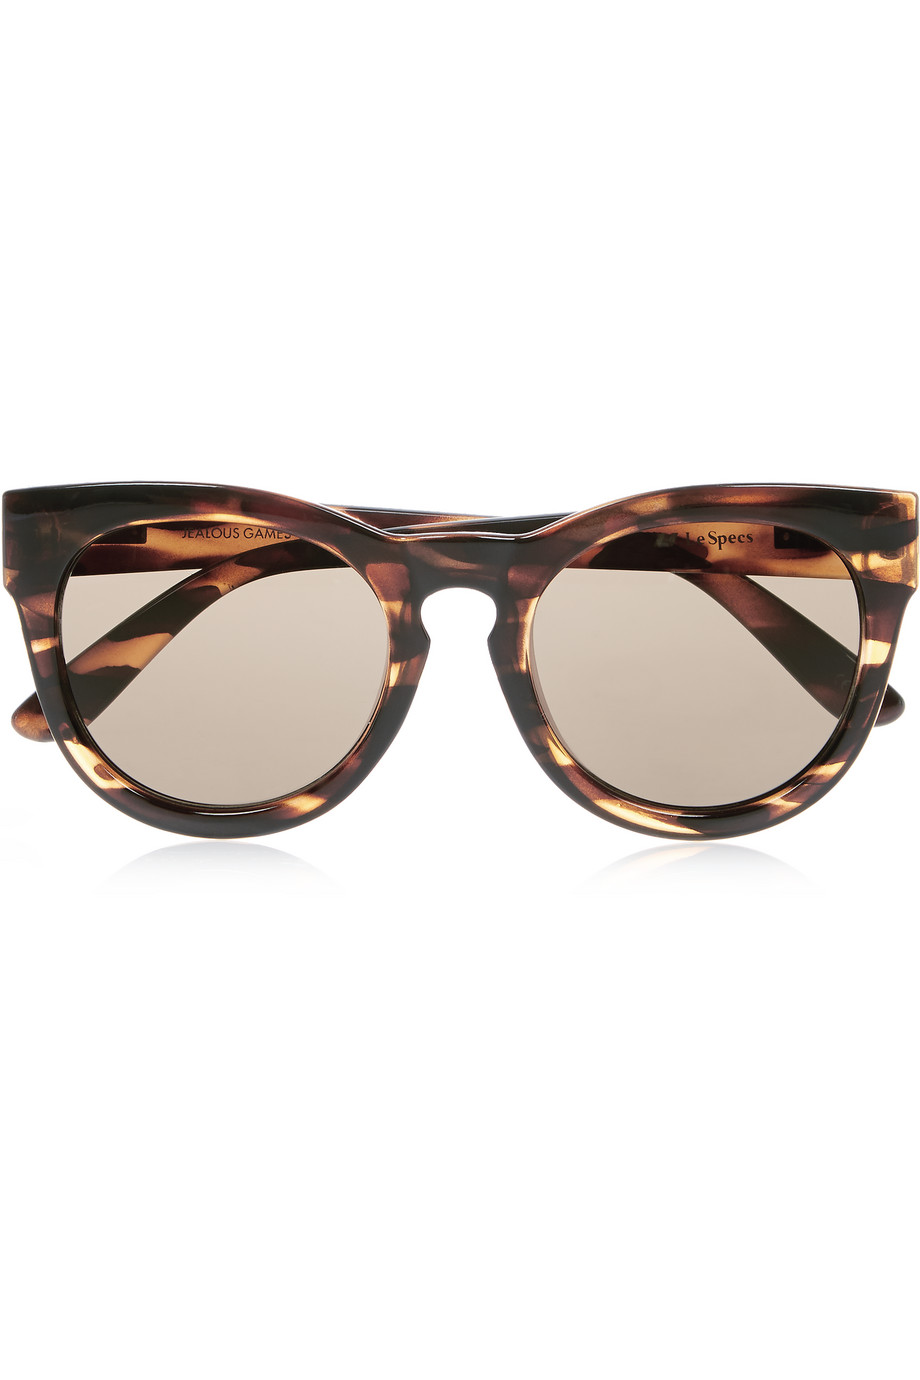 Le Specs Jealous Games Cat-Eye Acetate Sunglasses, Women's